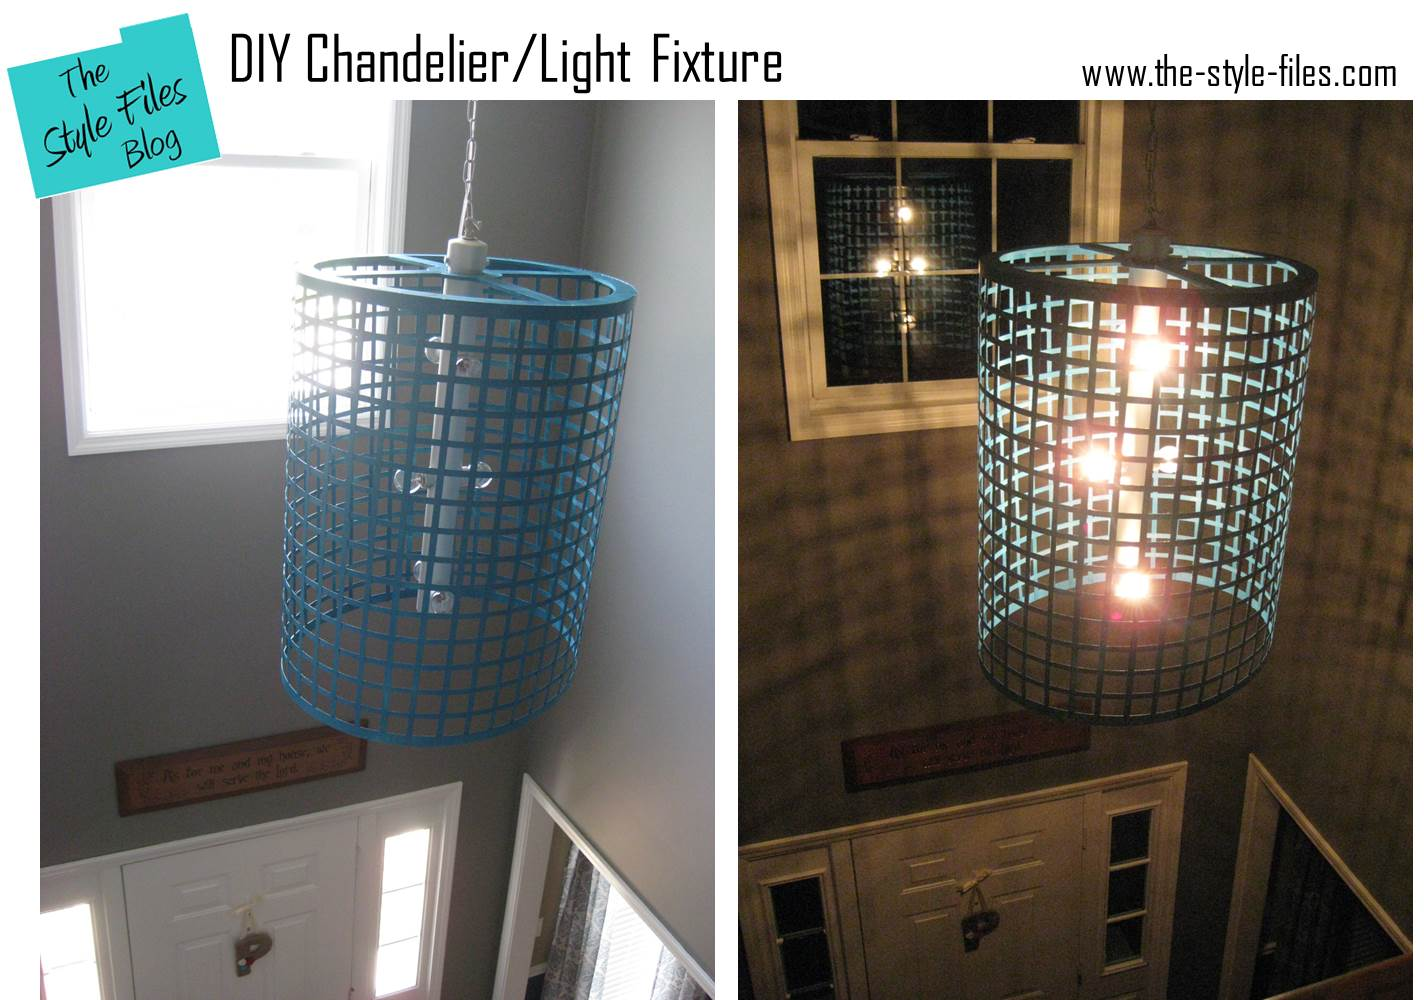 Diy chandelier light fixture the style files diy chandelier light fixture arubaitofo Choice Image